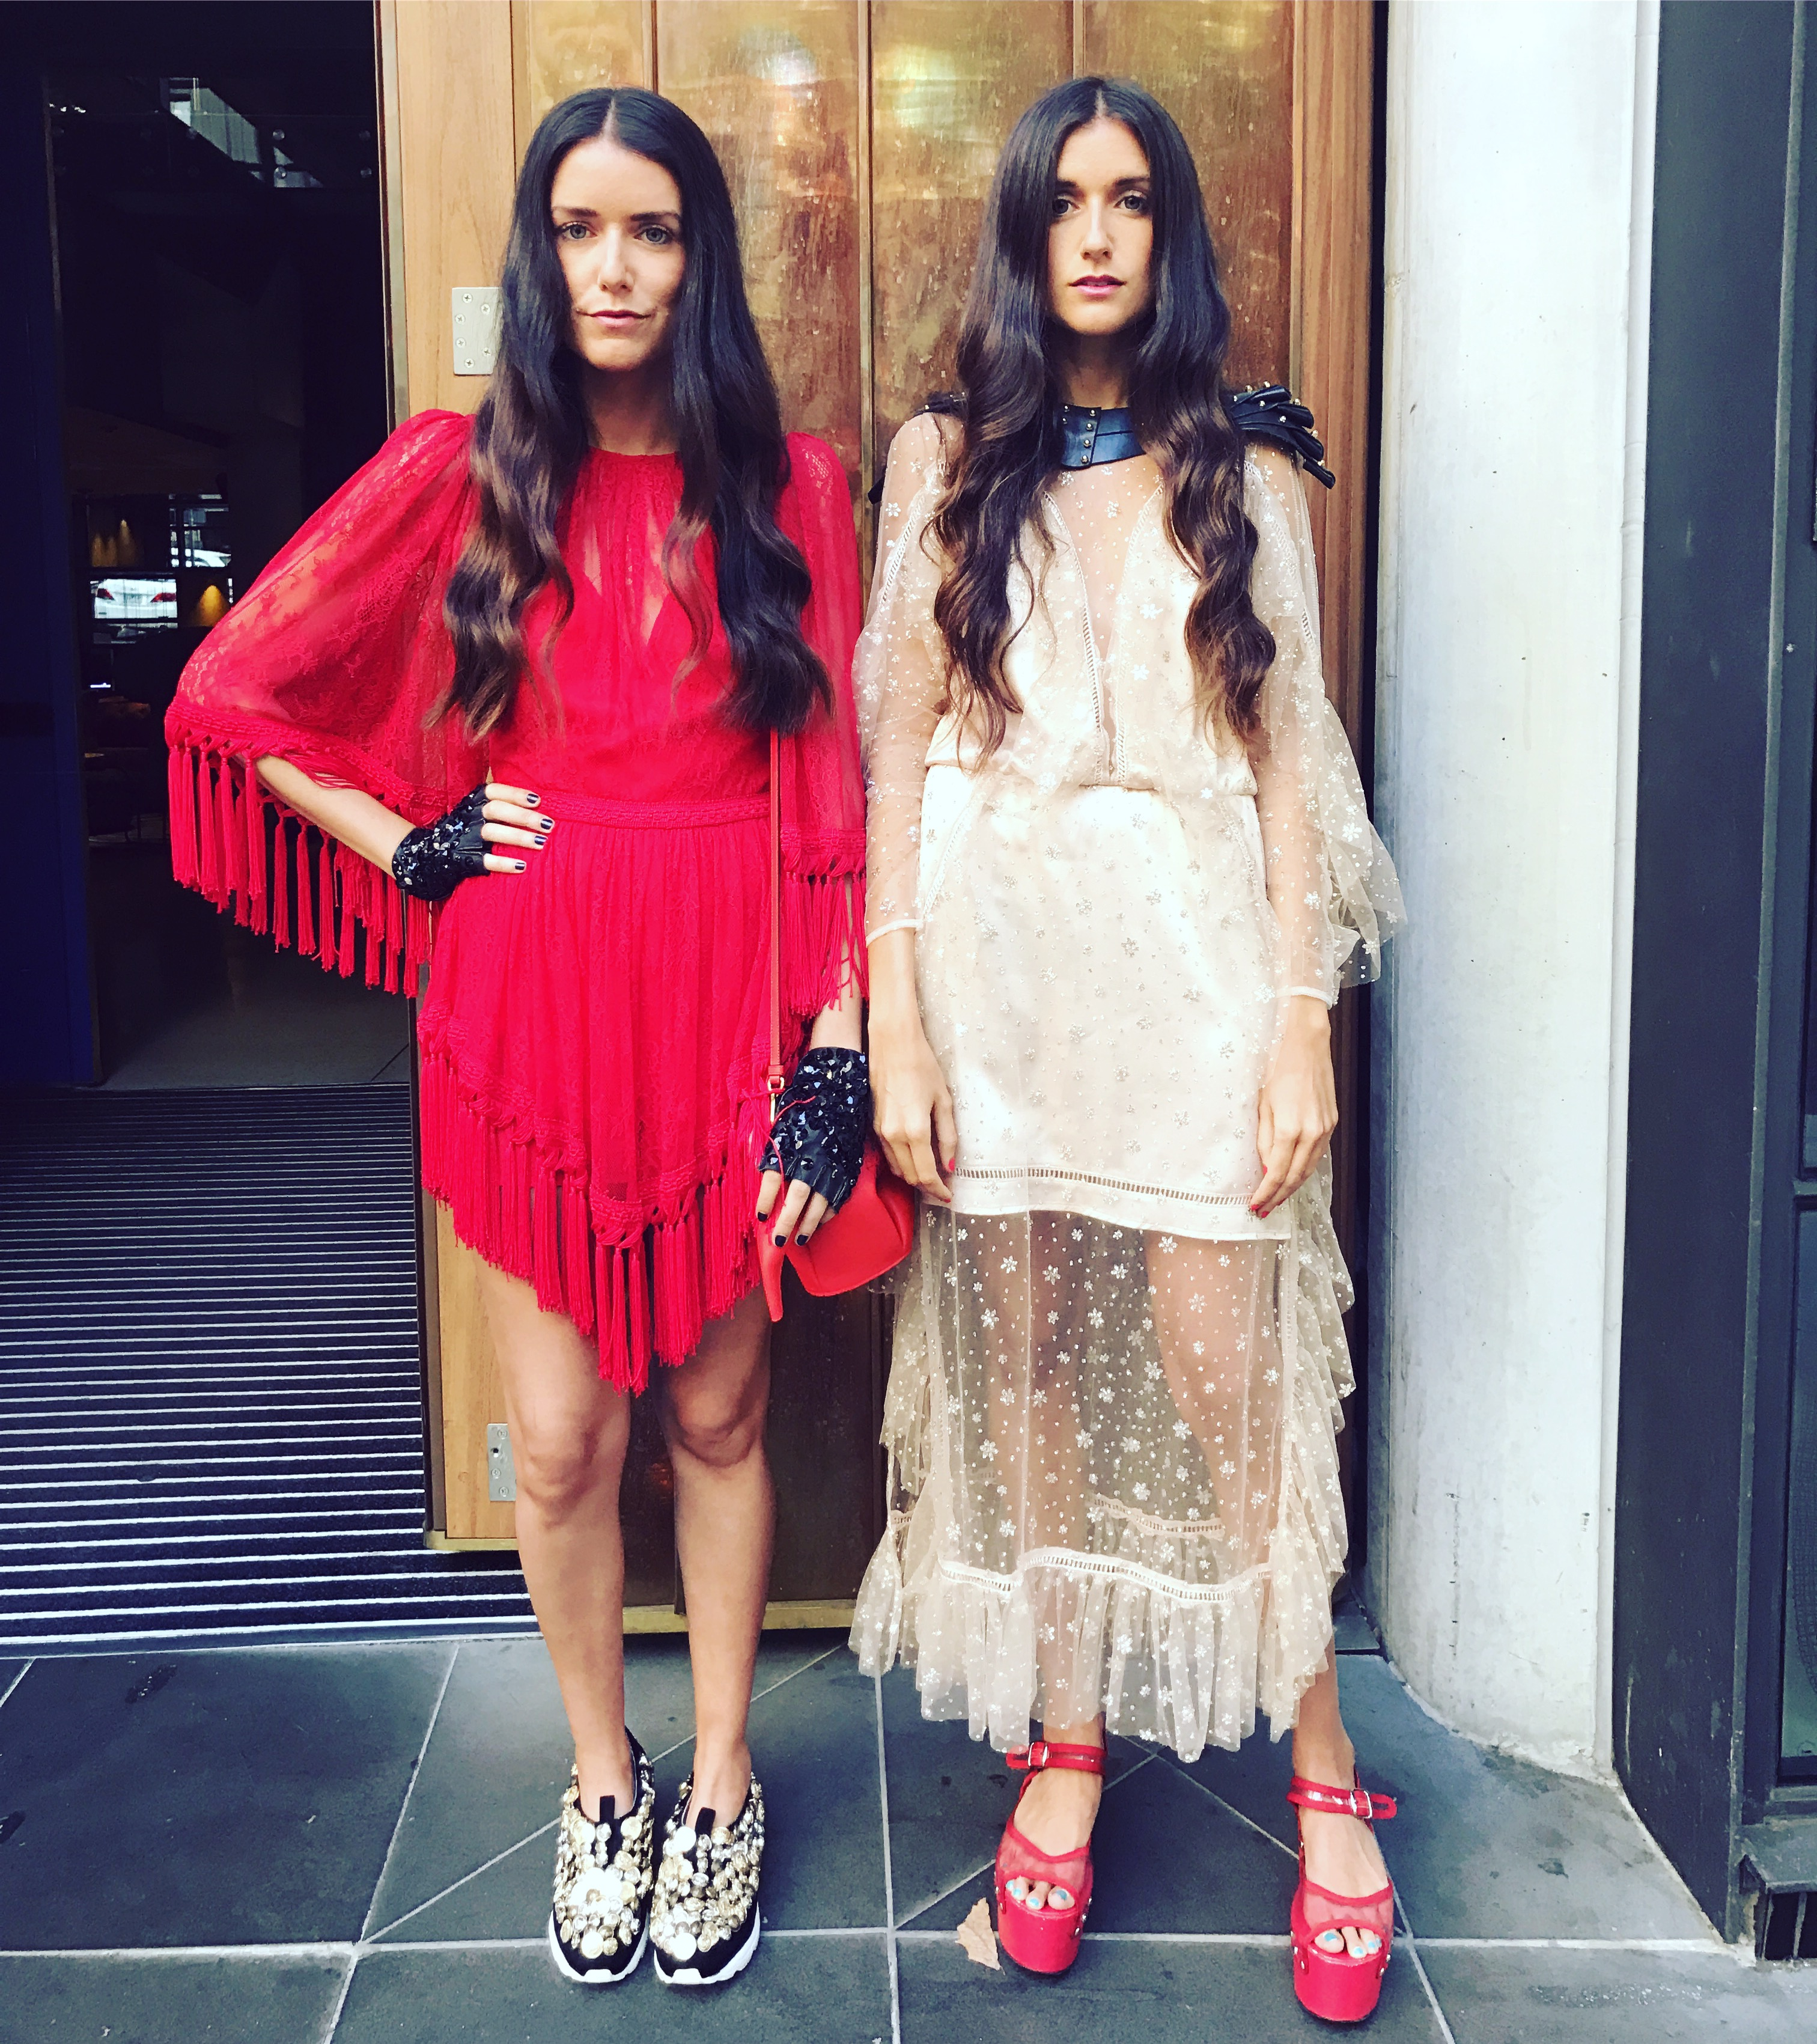 The Dadon Sisters from How Two Live - Miro Door